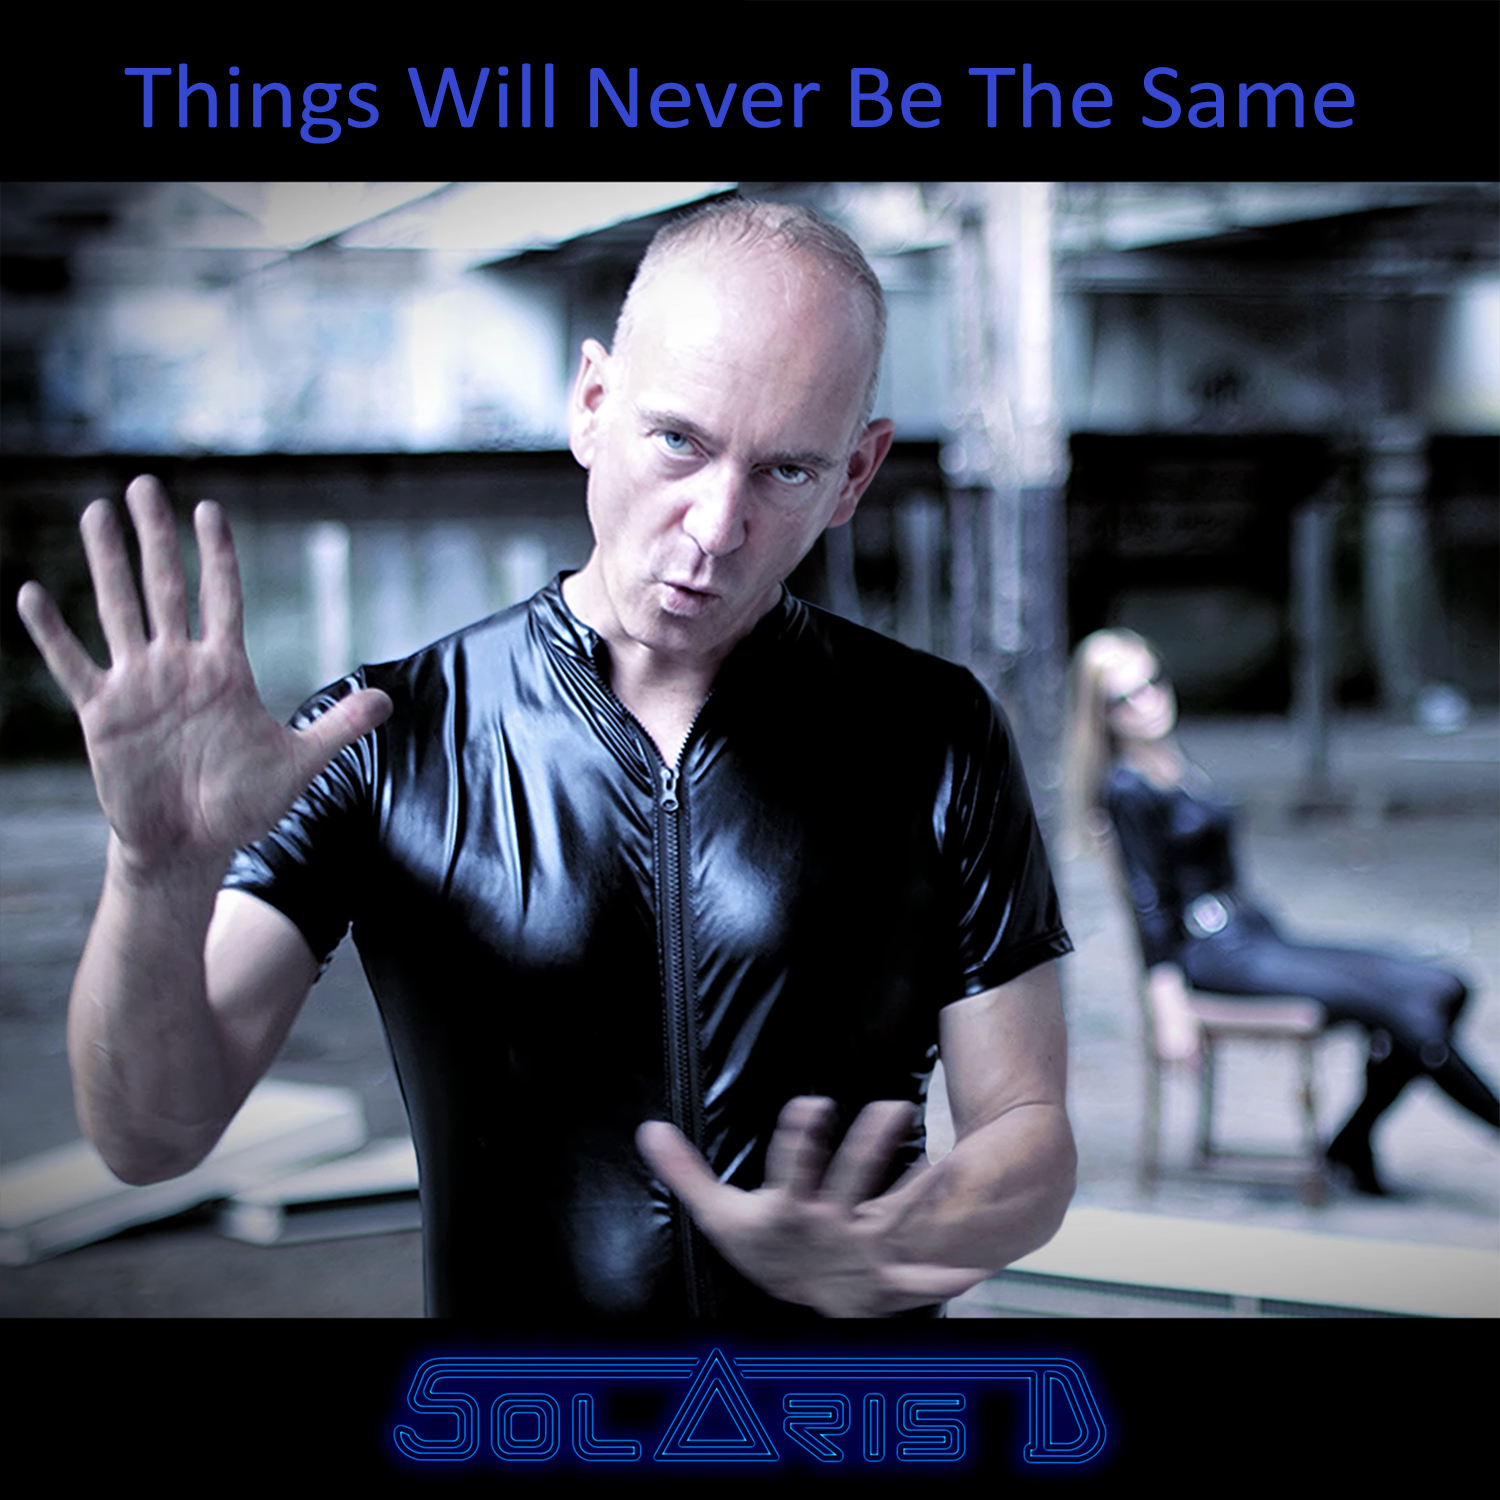 Solaris D - Things Will Never Be The Same - Solaris D - Things Will Never Be The Same